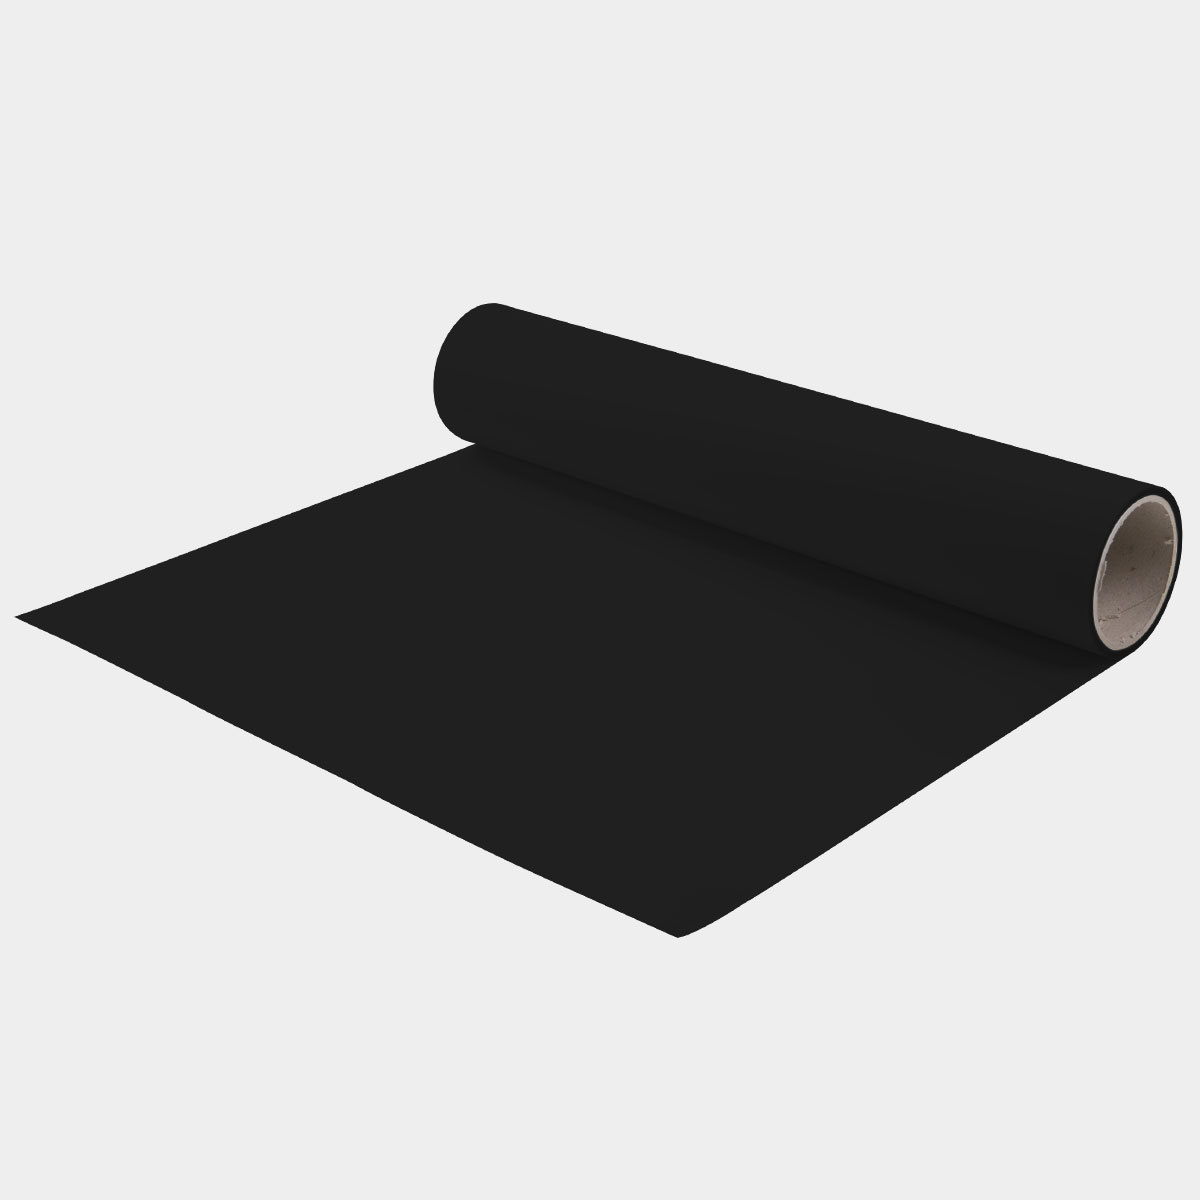 "HotMark Revolution Black Heat Transfer Vinyl 15""x5yd"